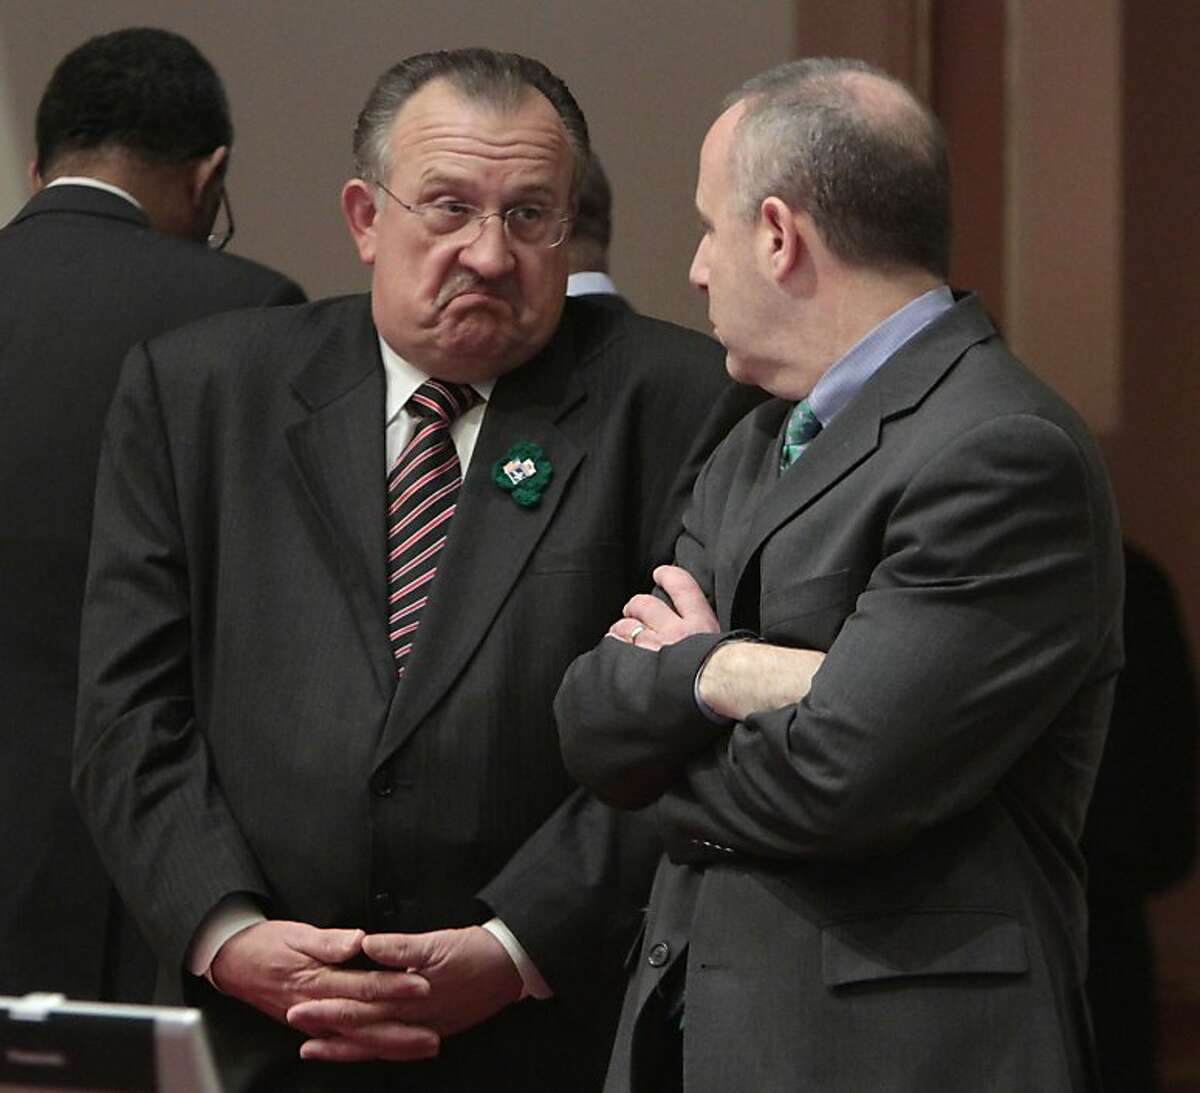 Senate Minority Leader Bob Dutton, R-Rancho Cucamonga, left, shrugs as he talks with Senate President Pro Tem Darrell Steinberg, D-Sacramento during the debate of Gov. Jerry Brown's budget package at the Capitol in Sacramento, Calif., Thursday March 17,2011. By a party-line vote, both houses of the legislature approved Brown's main budget bill but did not approve putting tax extensions before voters or eliminating redevelopment agencies.